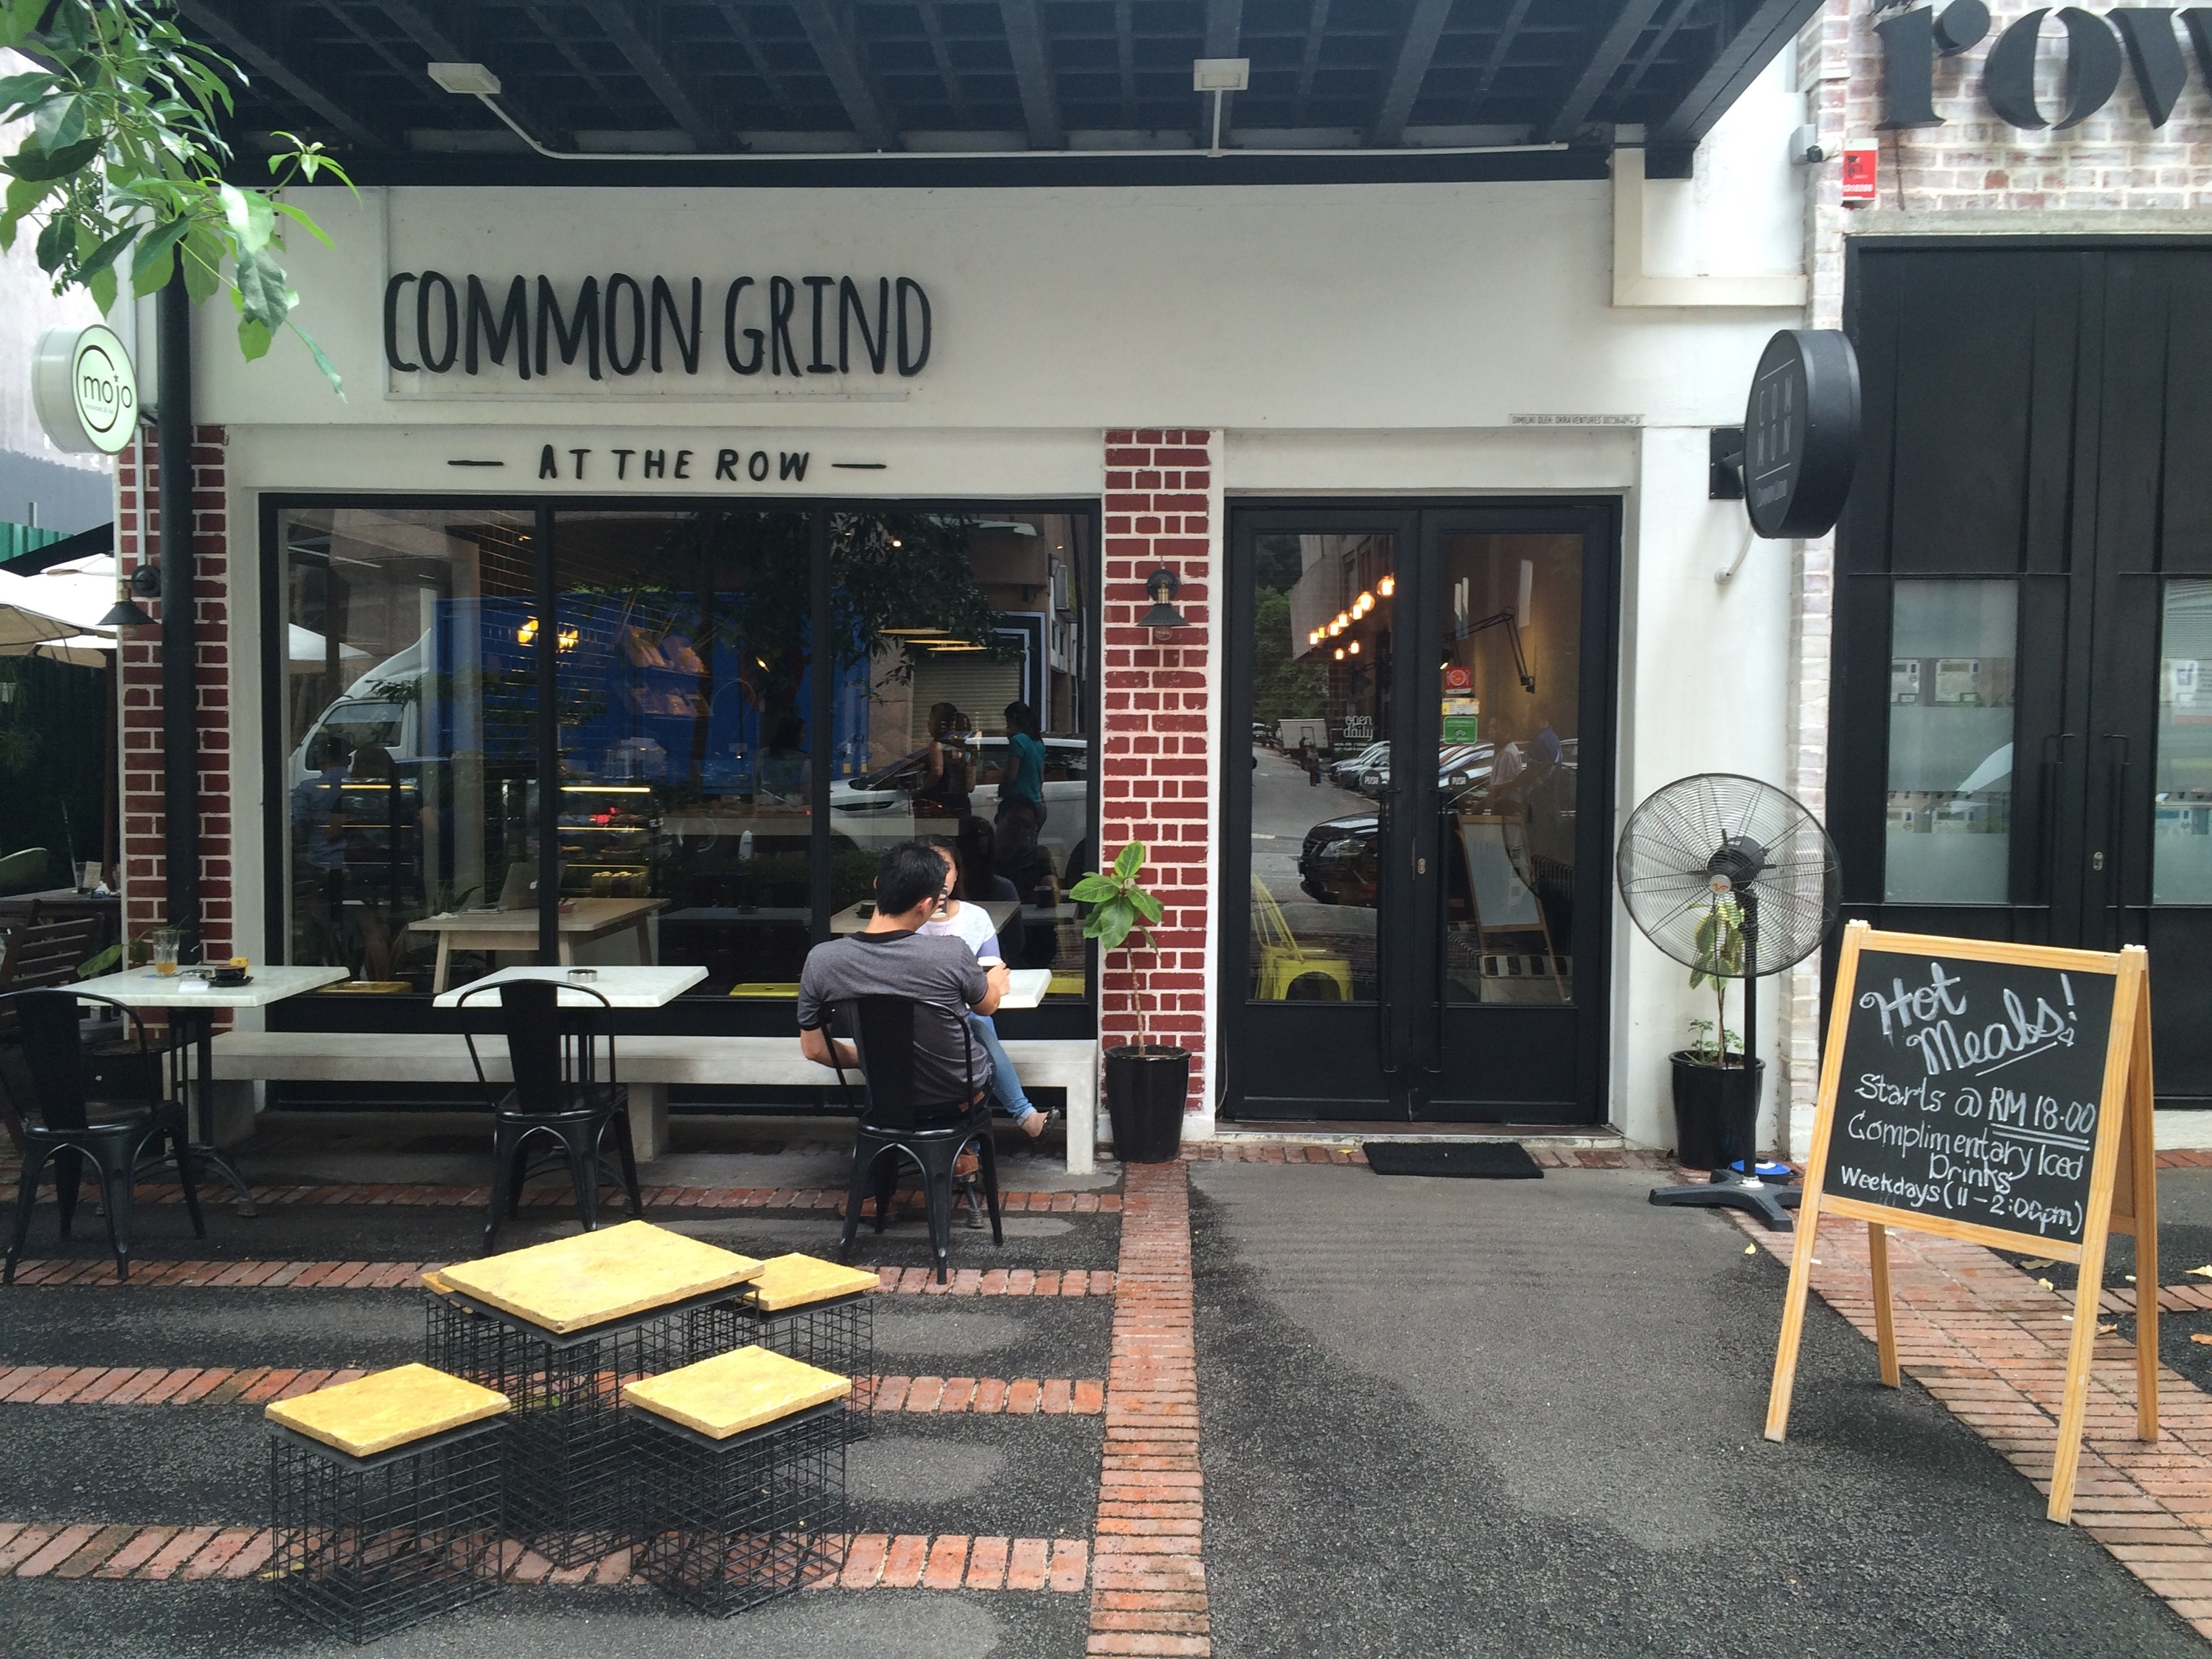 Common Grind at The Row